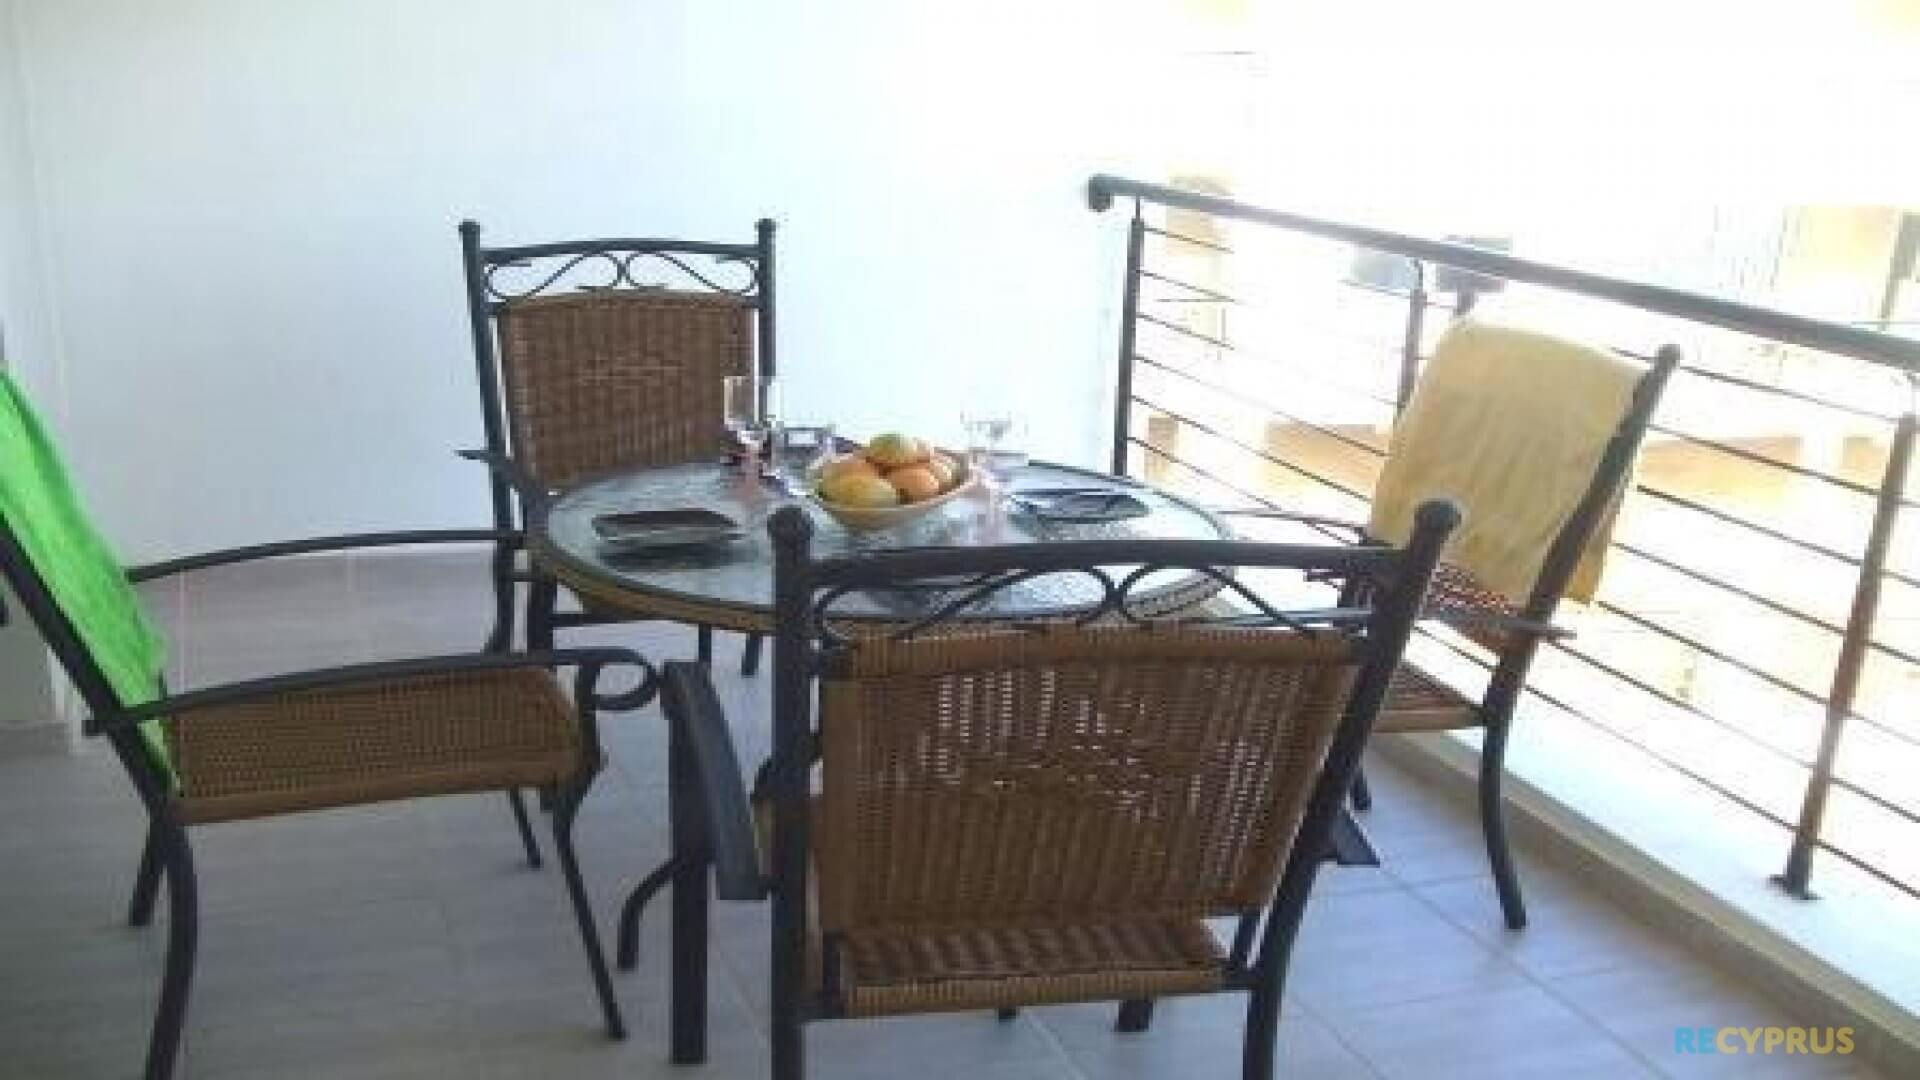 Apartment for sale Kapparis Famagusta Cyprus 7 3458